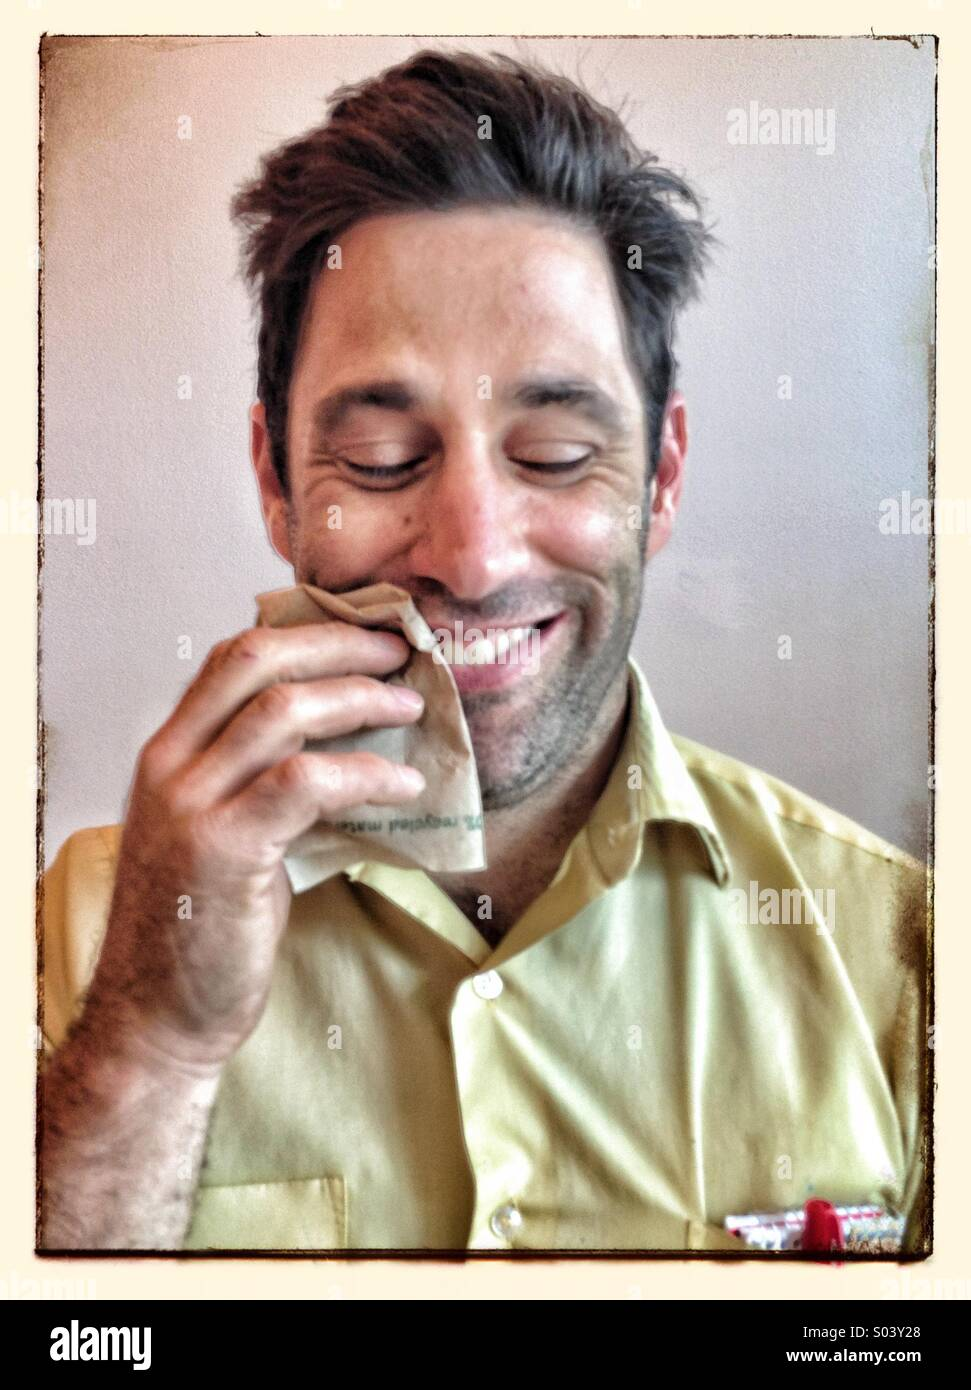 Fun guy after meal - Stock Image